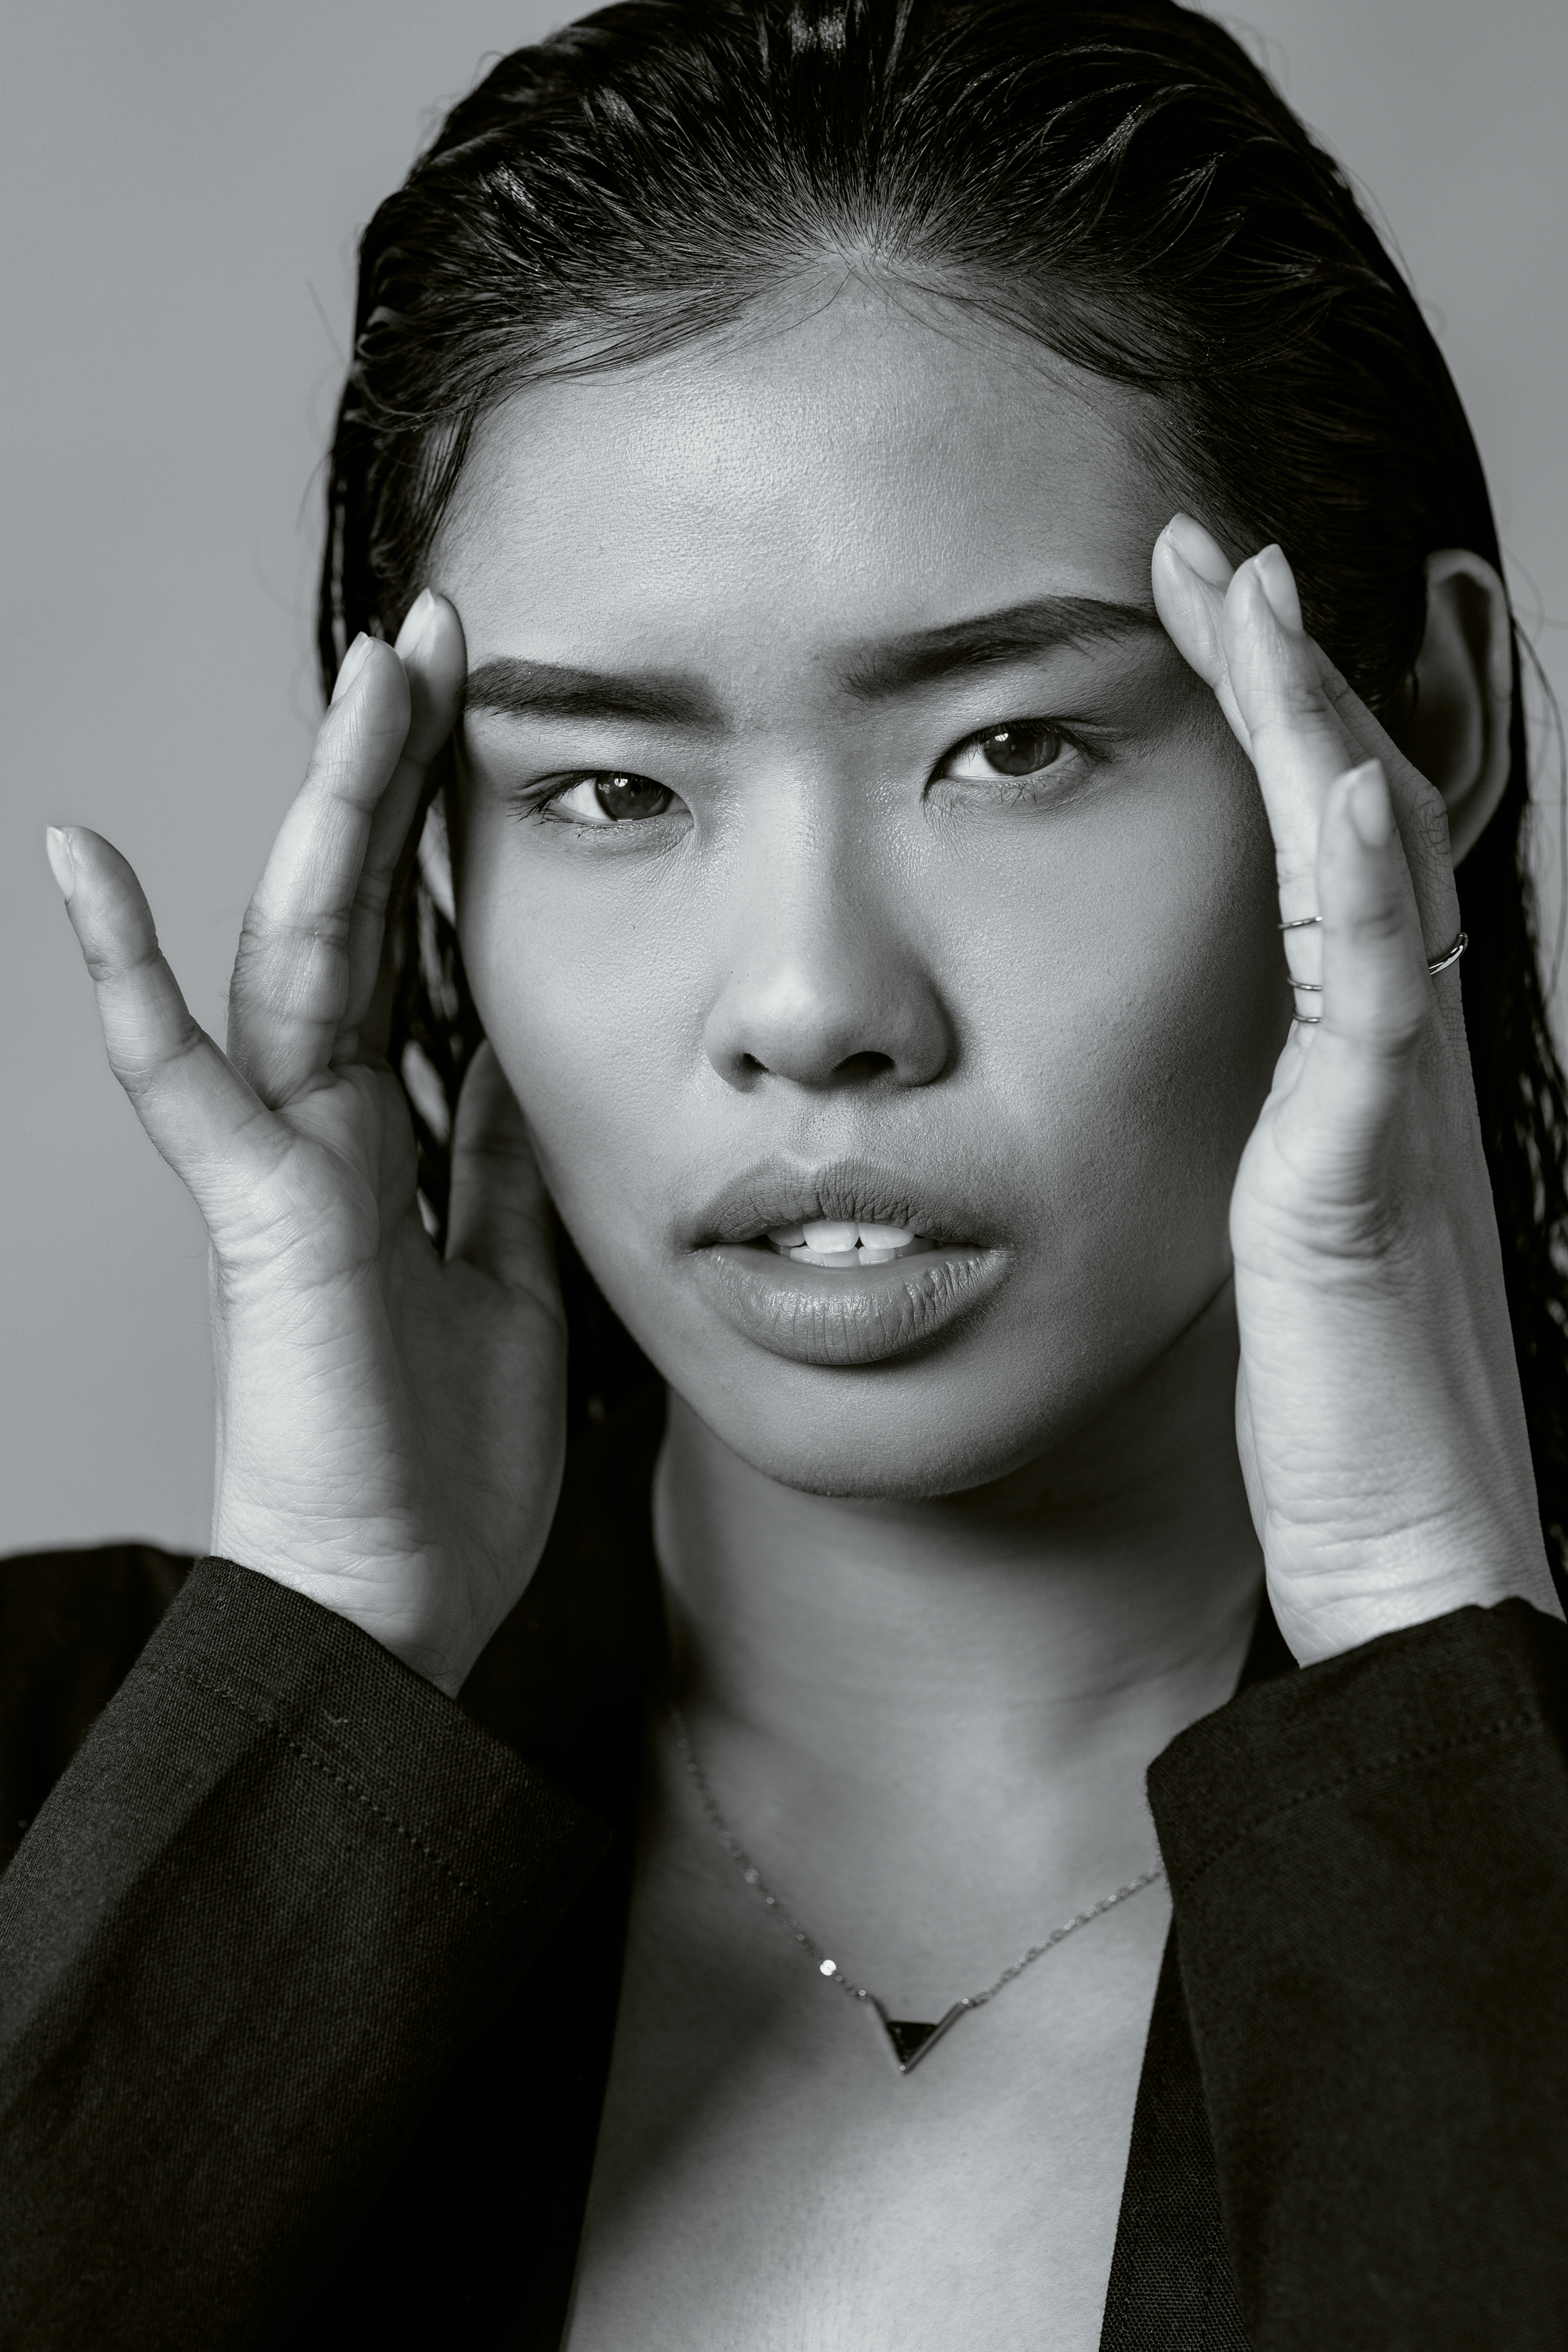 An Asian model with her hands up to her face.